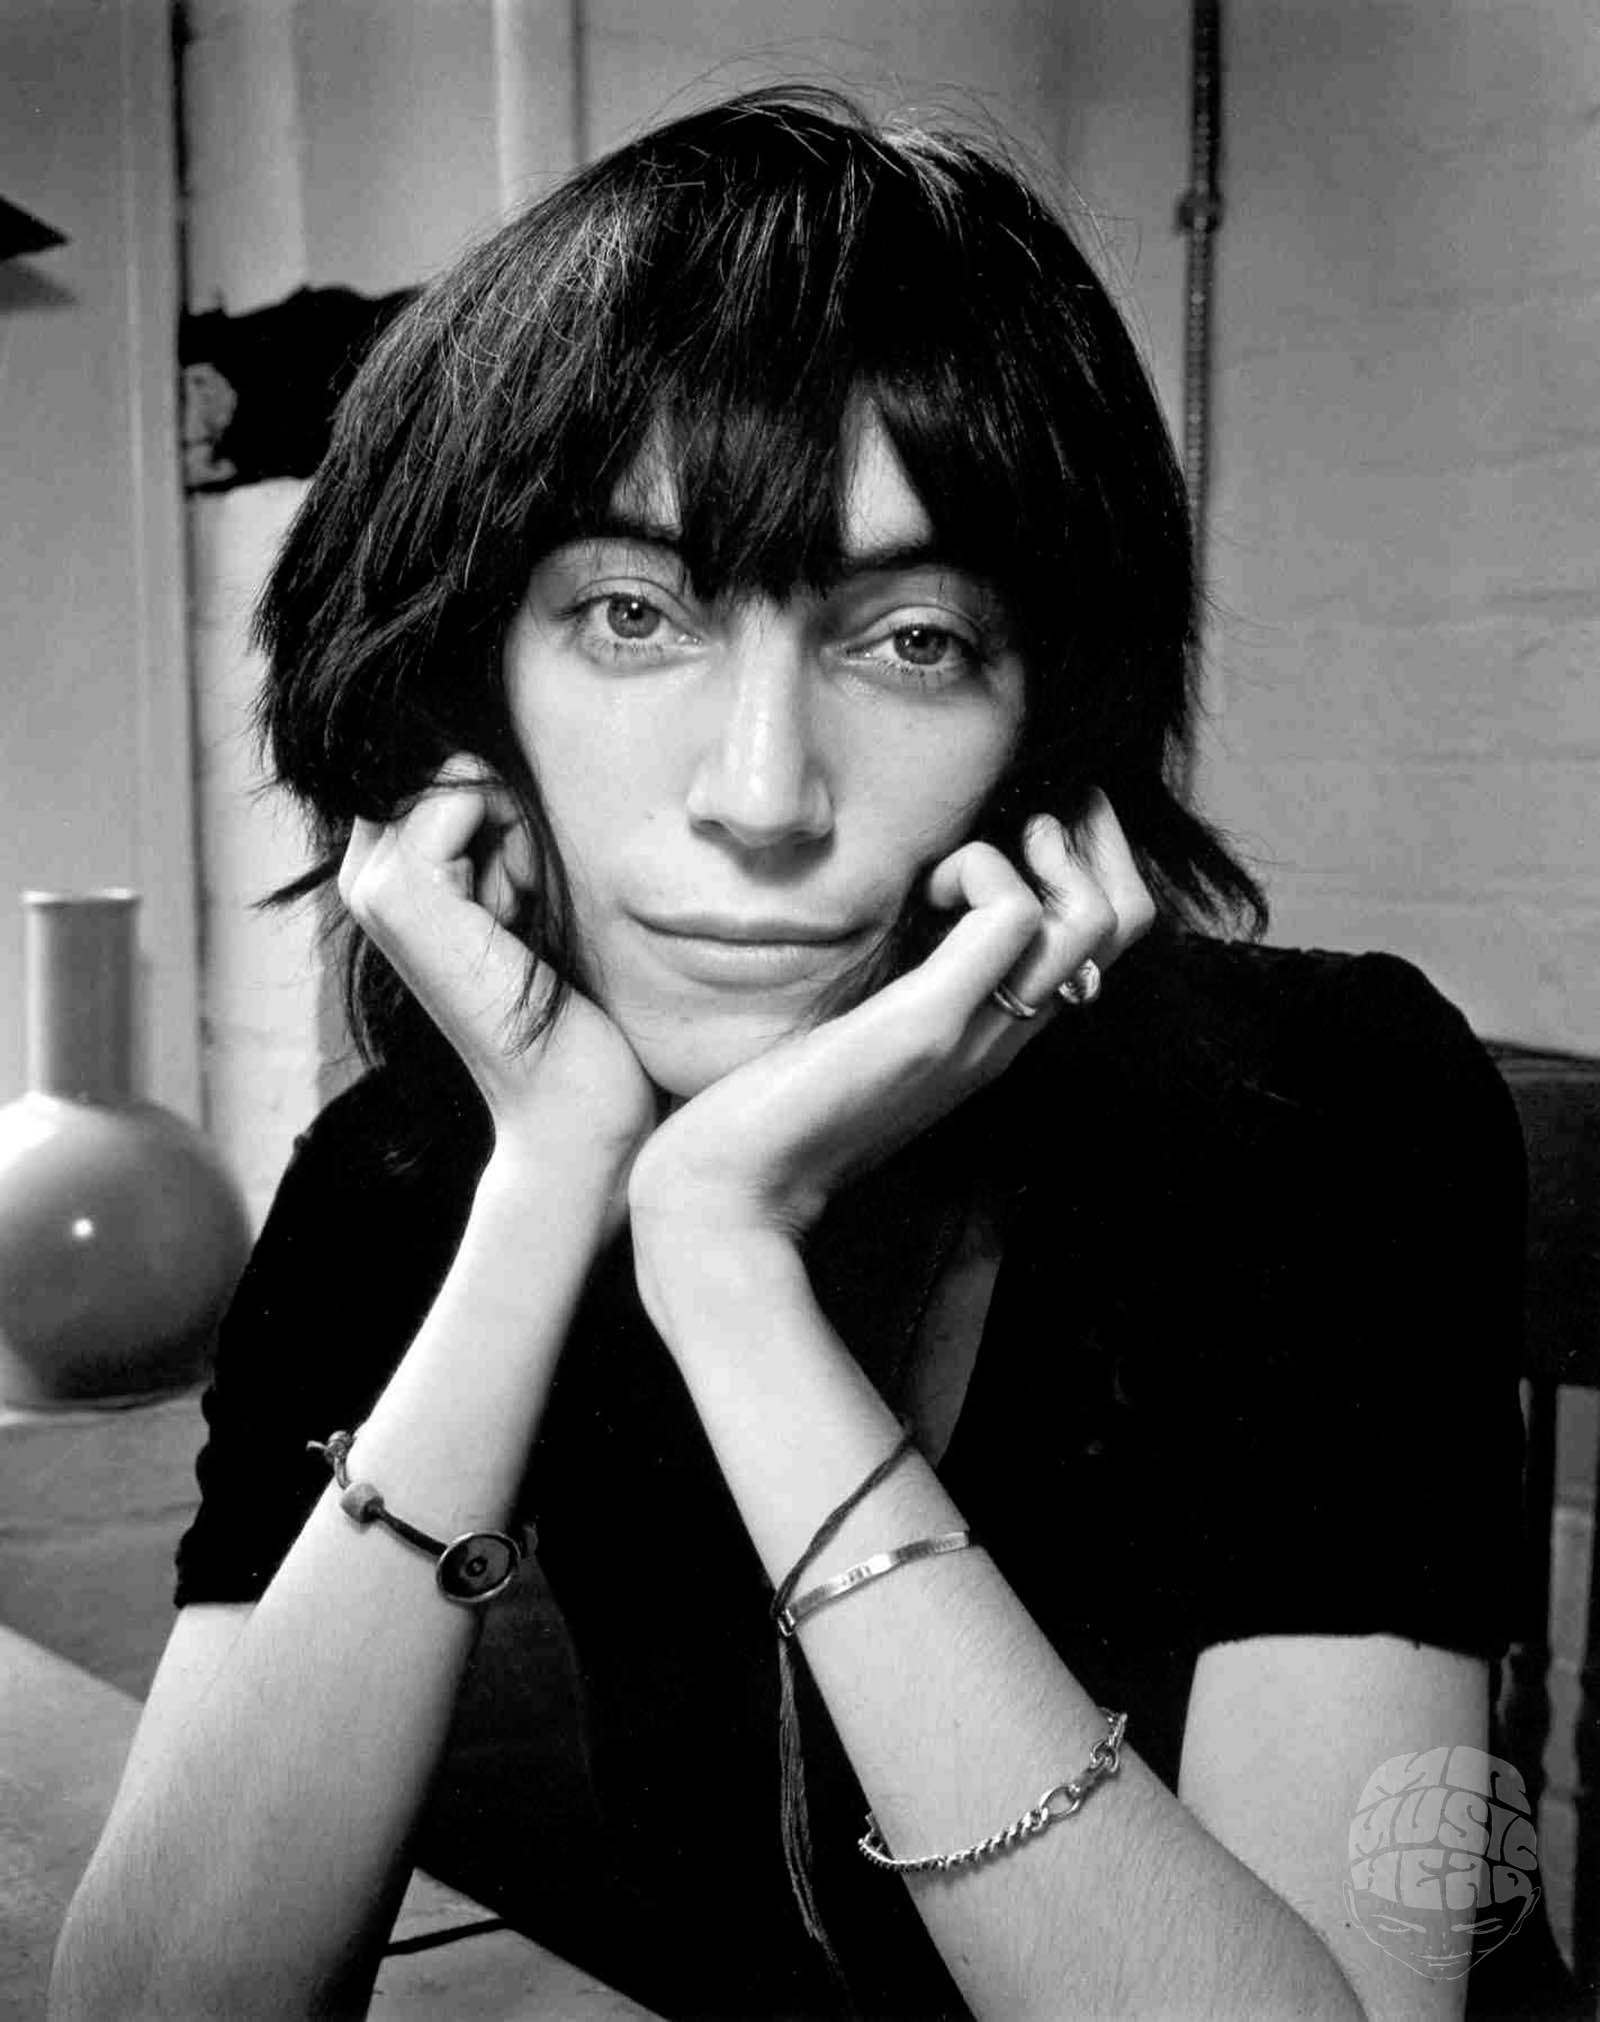 frank stefanko_Patti Smith_Day Dream-2.jpg